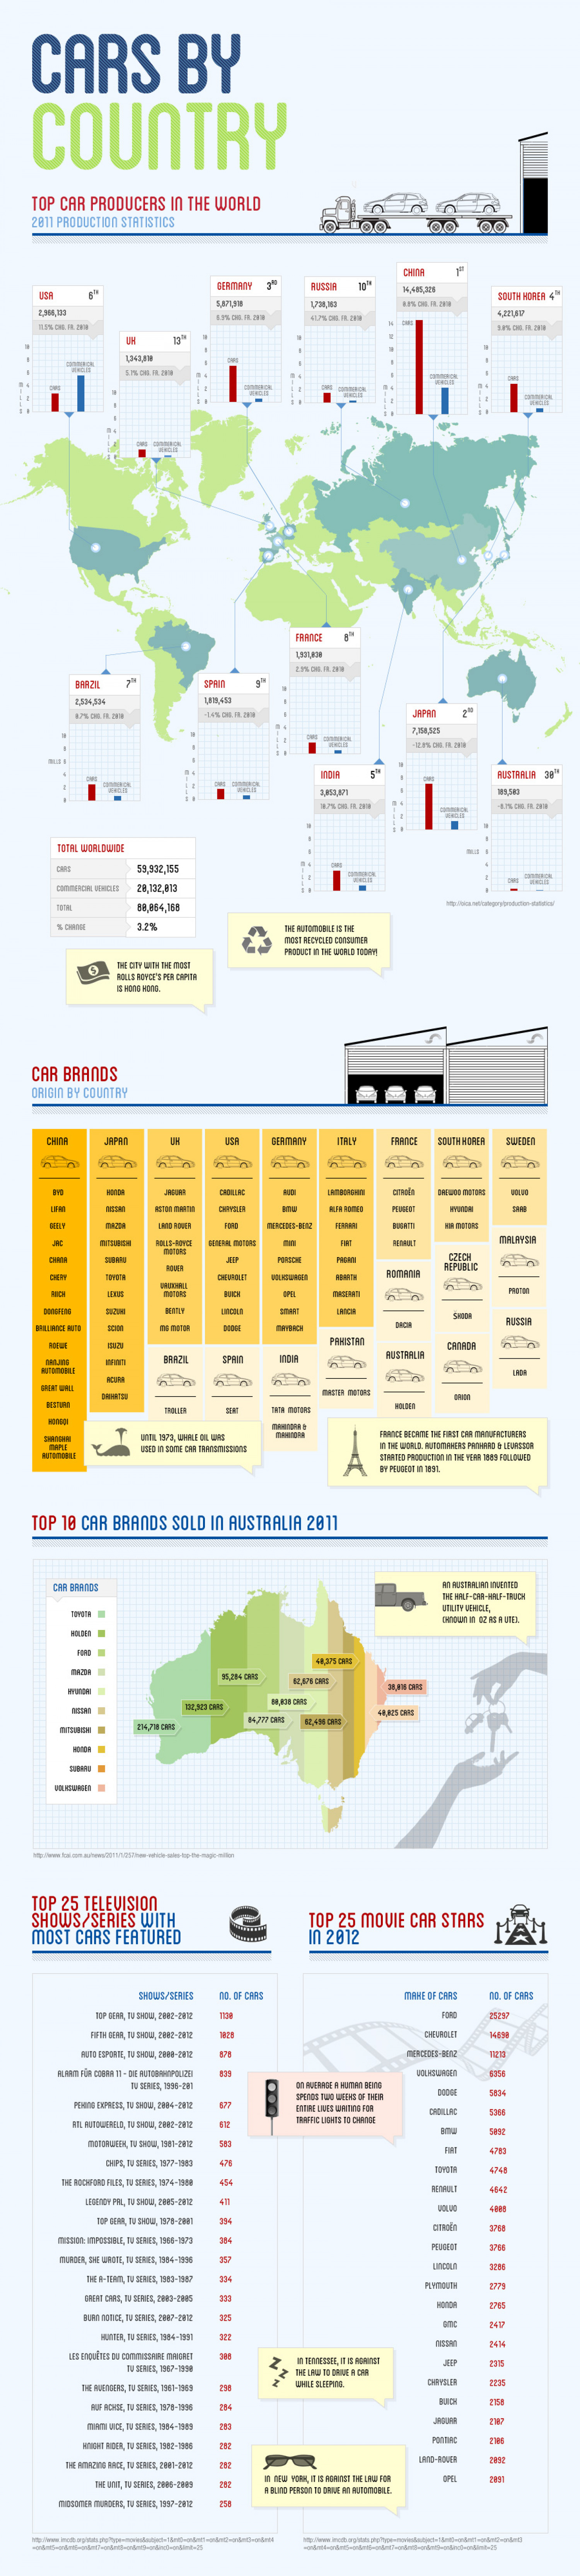 Cars by Country Infographic Infographic